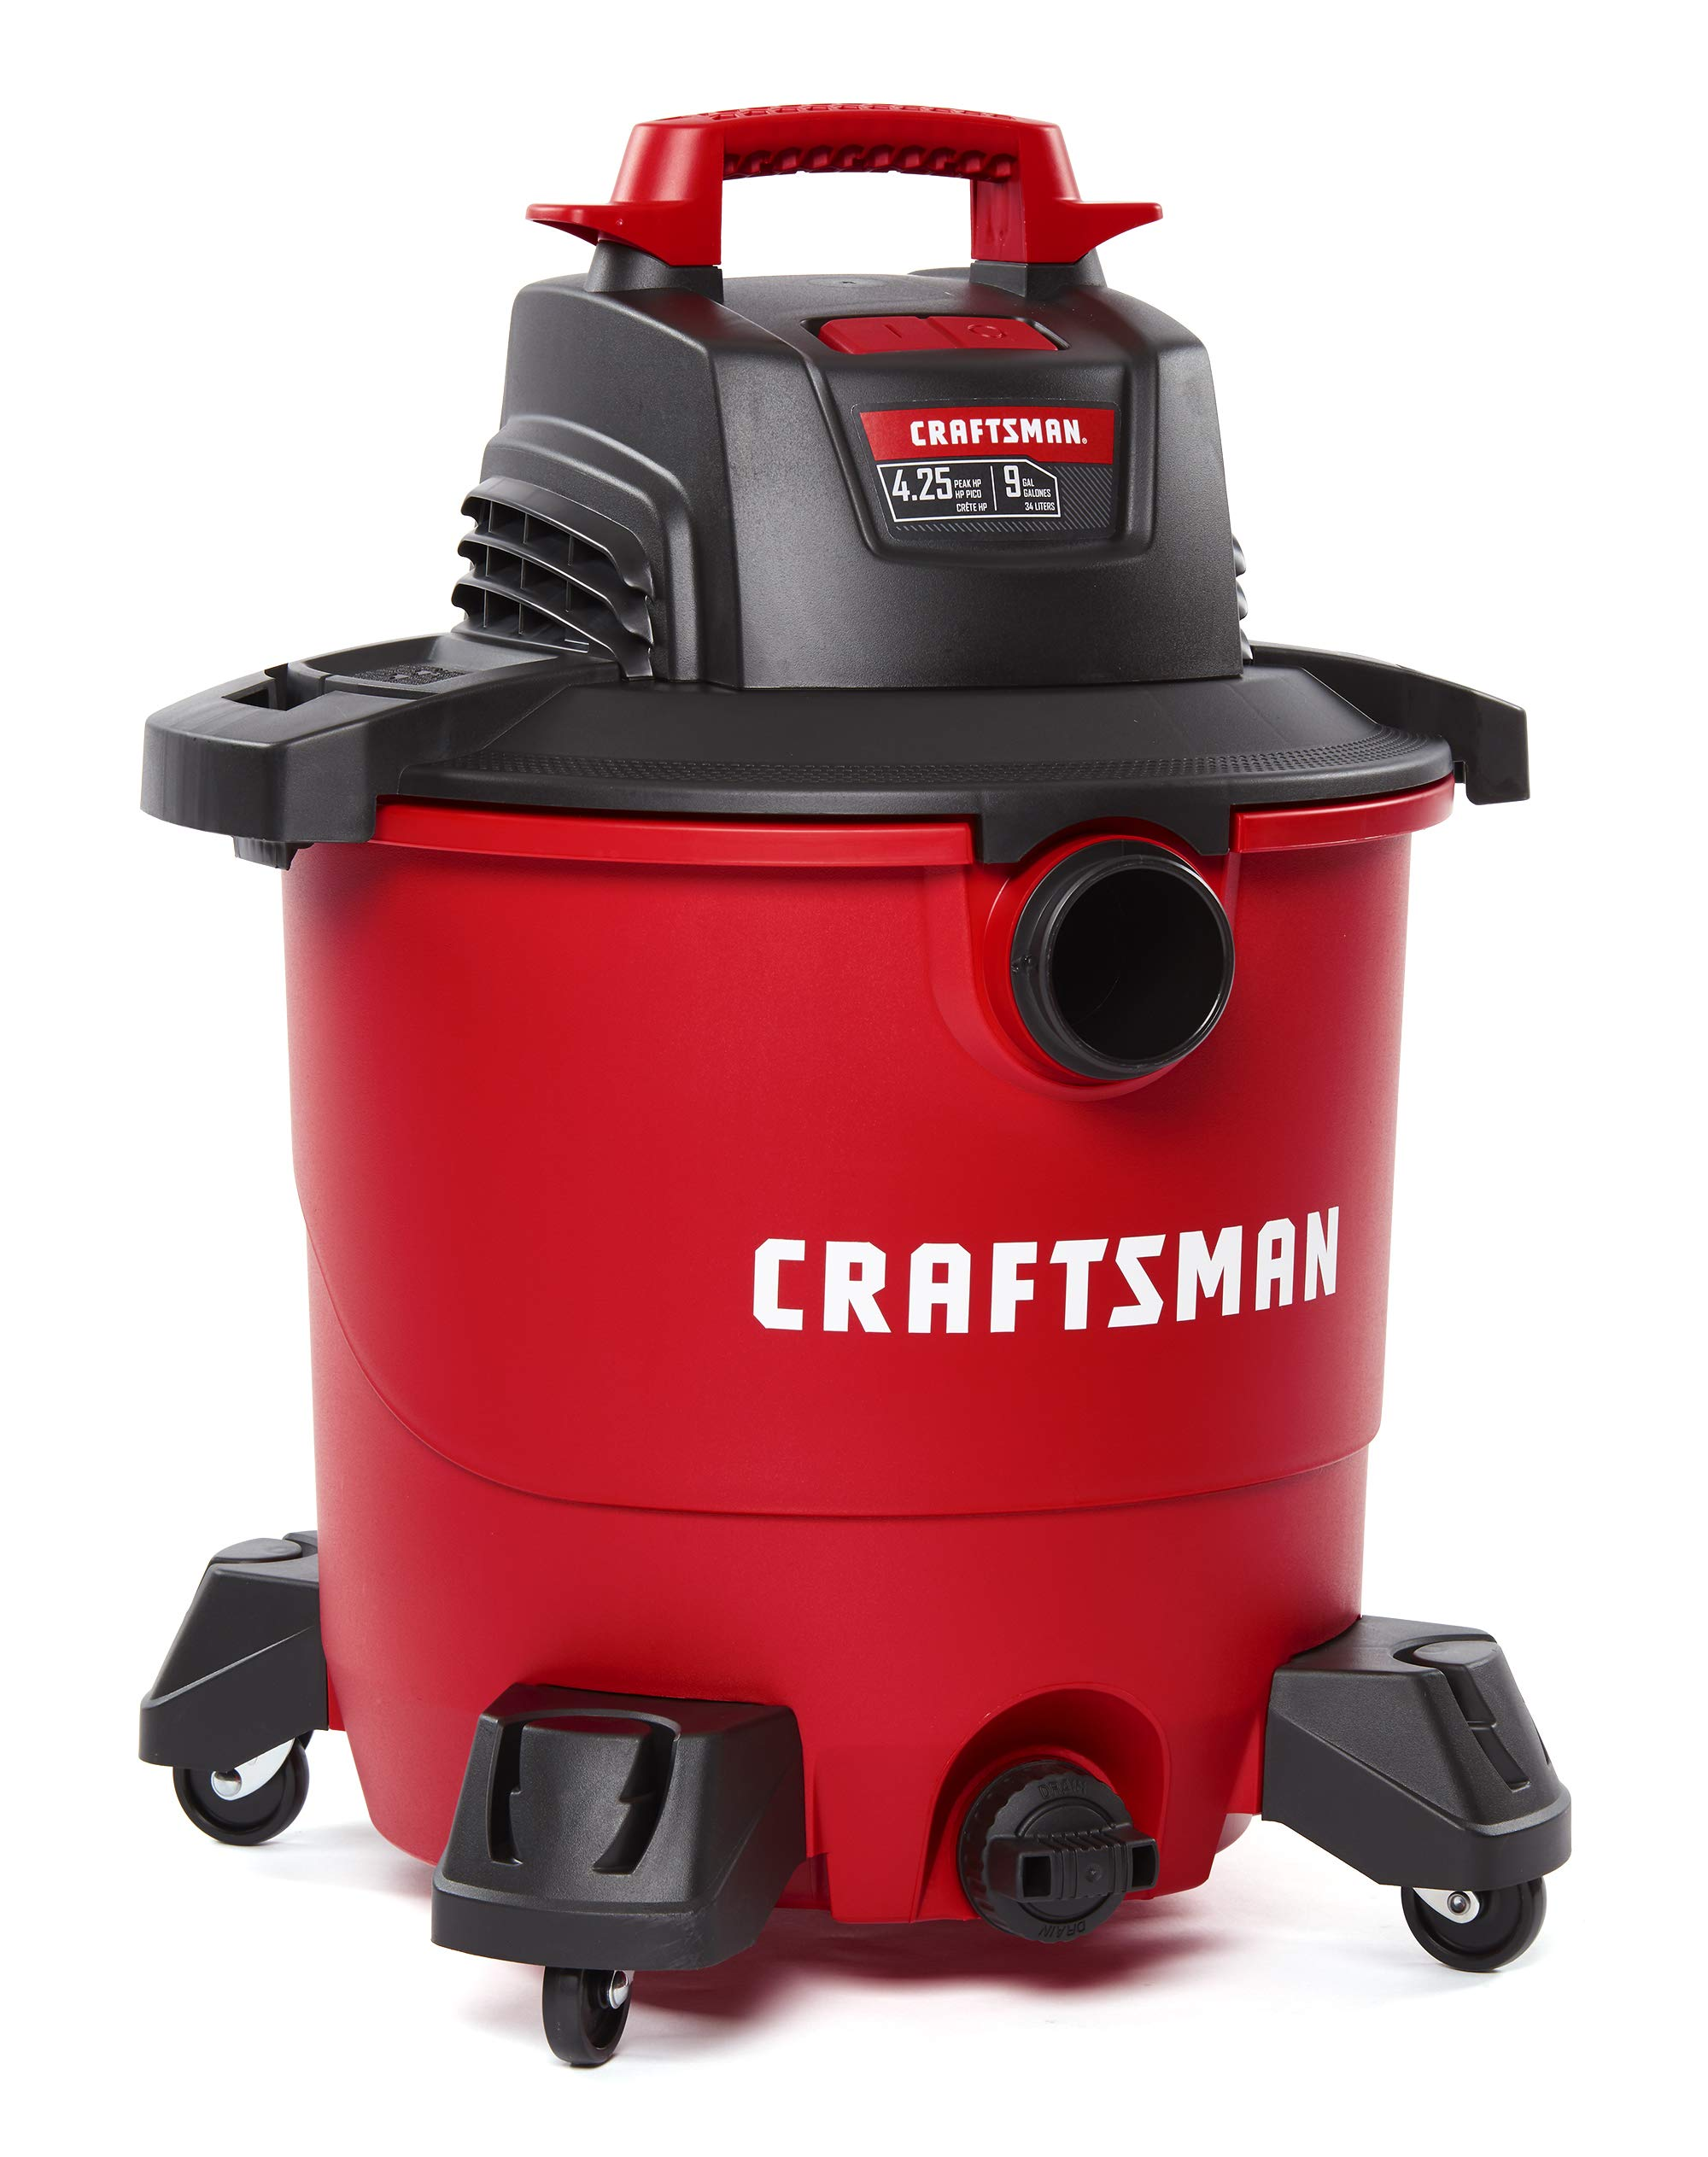 CRAFTSMAN CMXEVBE17590 9 Gallon 4.25 Peak HP Wet/Dry Vac, Portable Shop Vacuum with Attachments by Craftsman